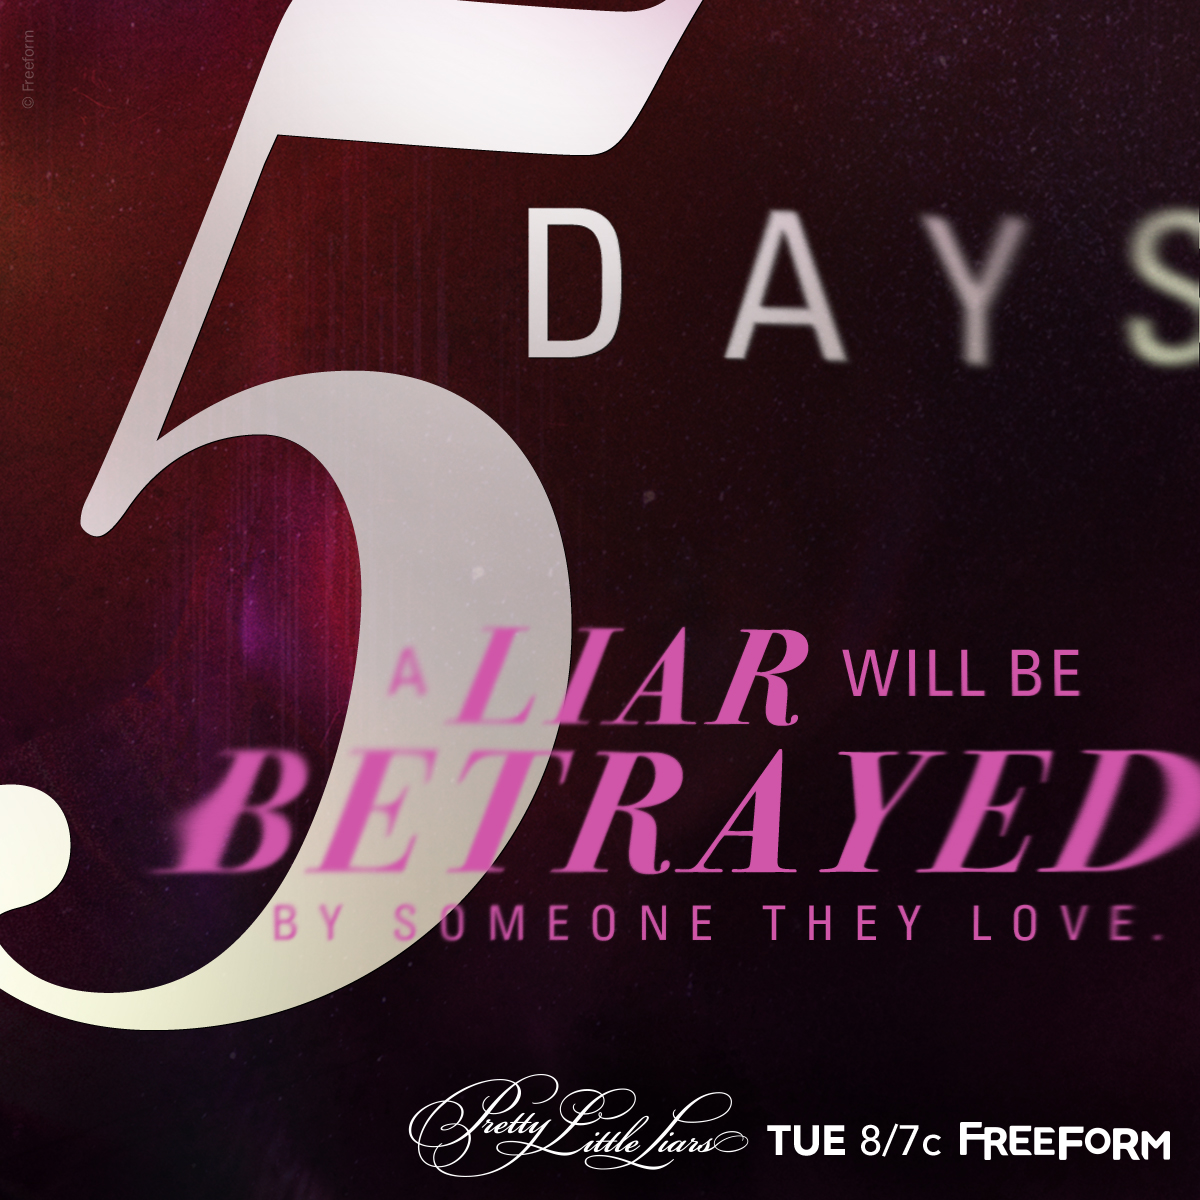 Pretty Little Liars - Countdown: Five Days Until The Pretty Little Liars Season 6 Finale! - 1014